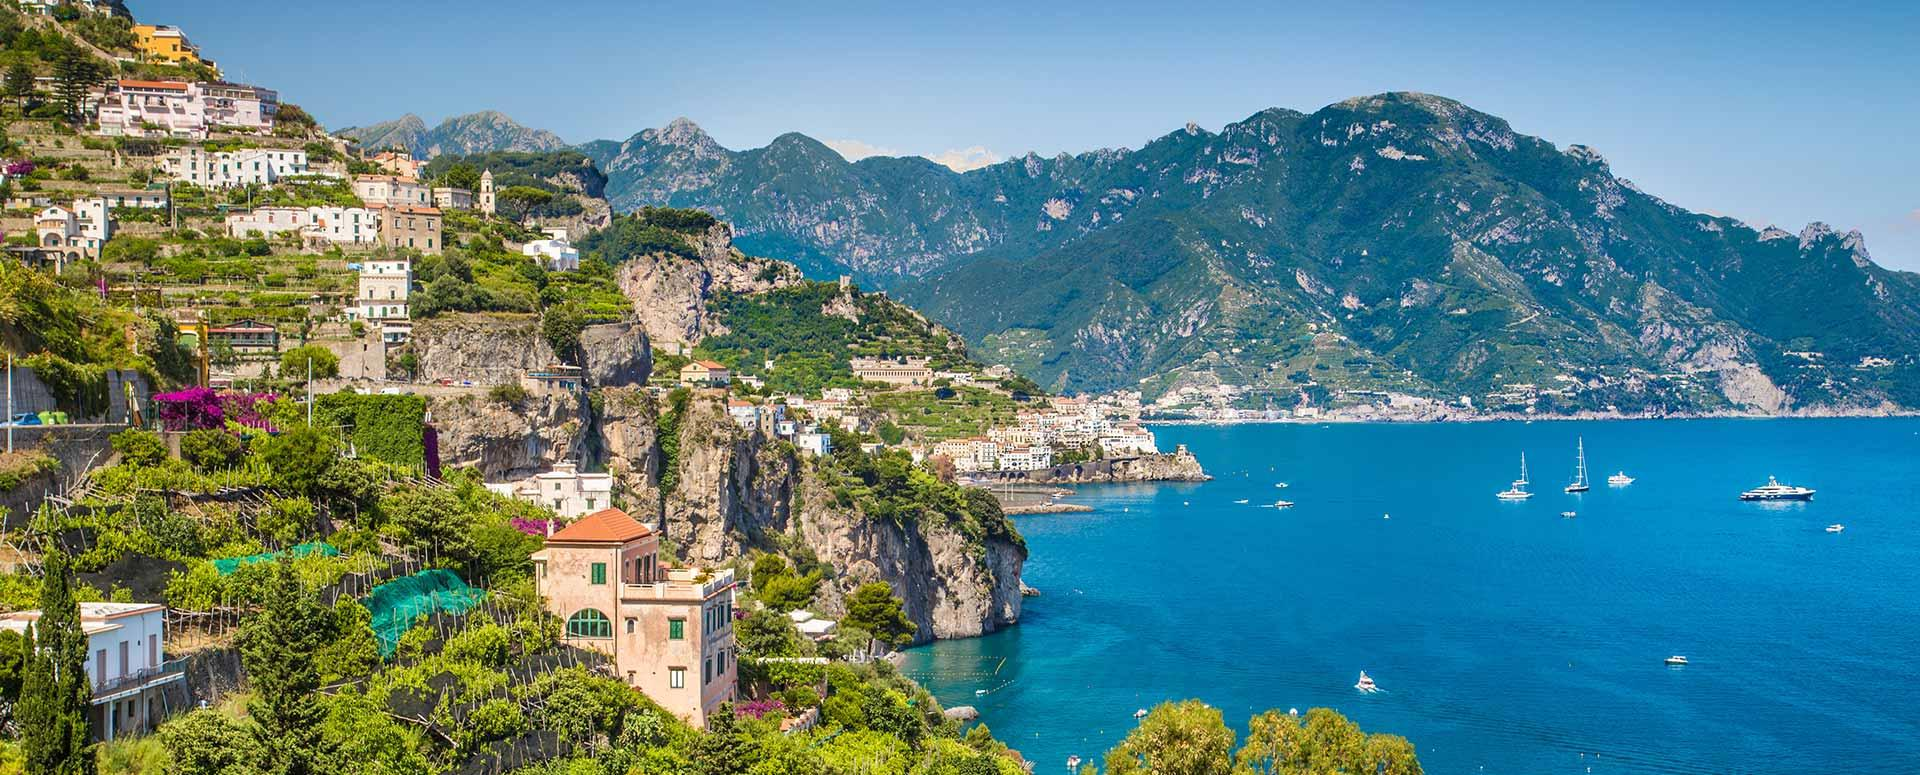 Book Your Italy Vacation With Confidence